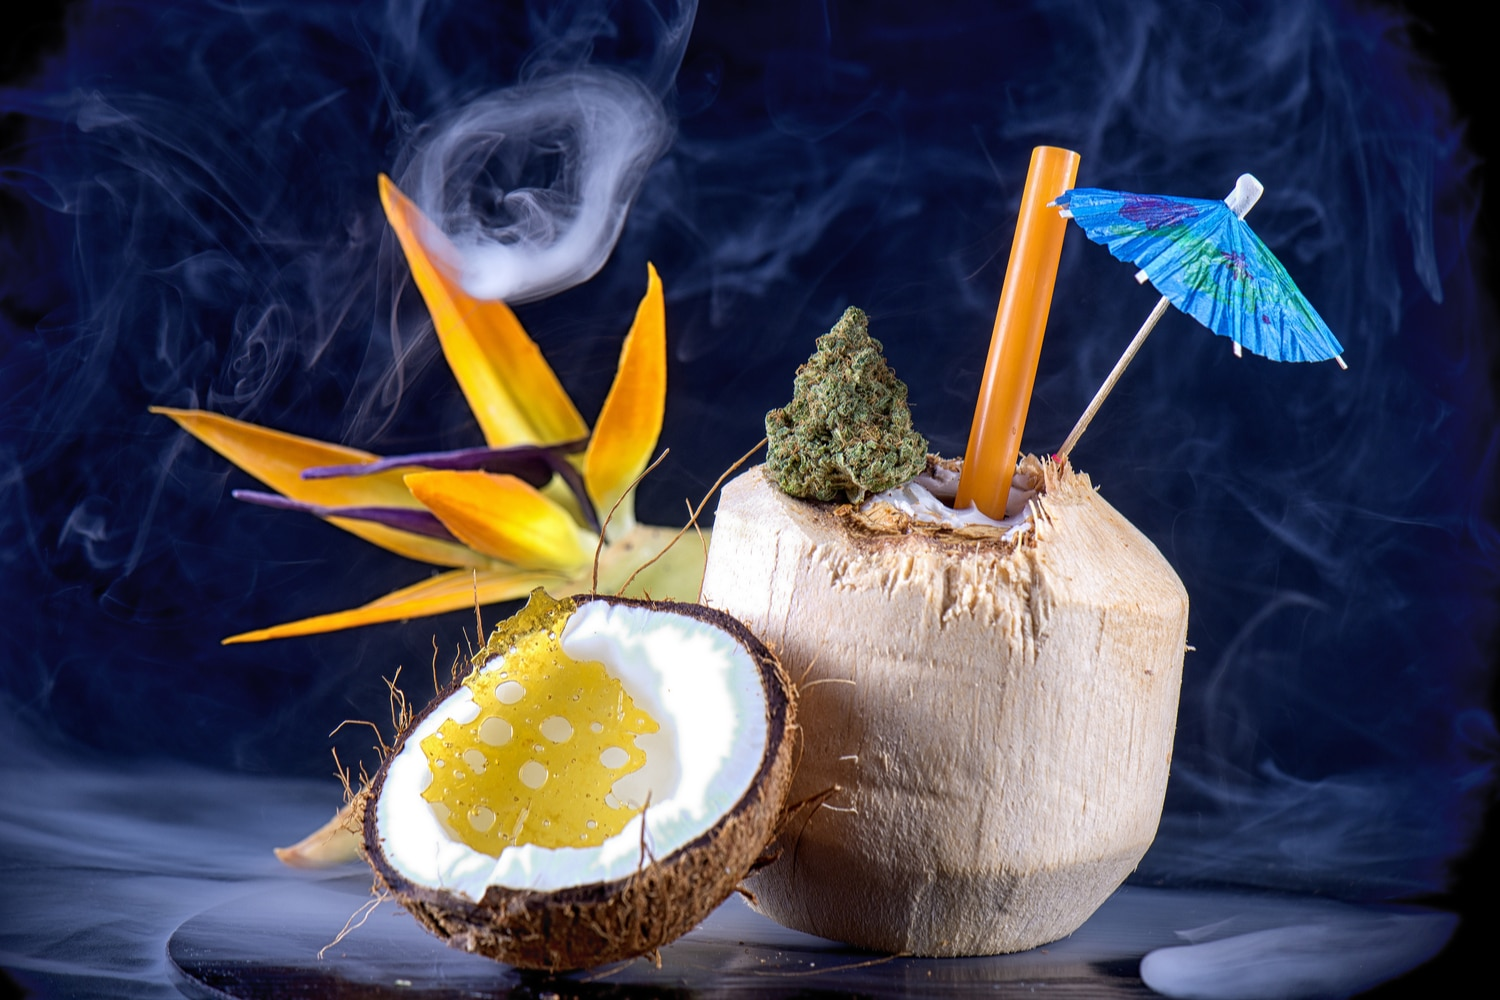 Coconut infused drink